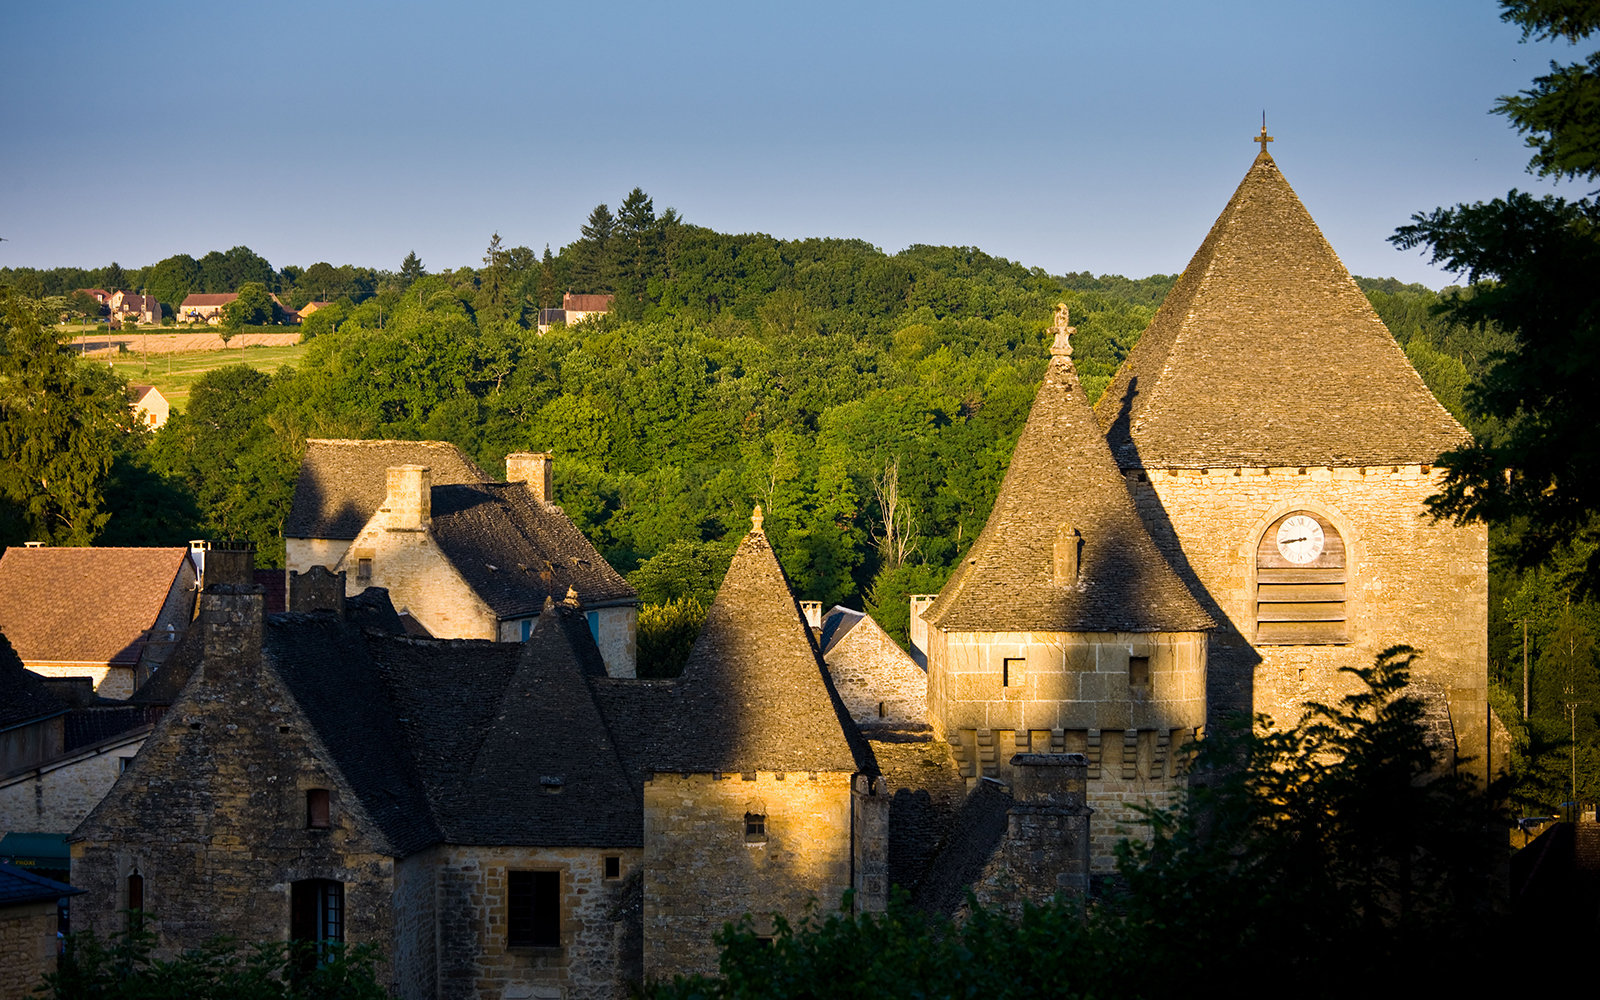 castle in St.-Geniès, France